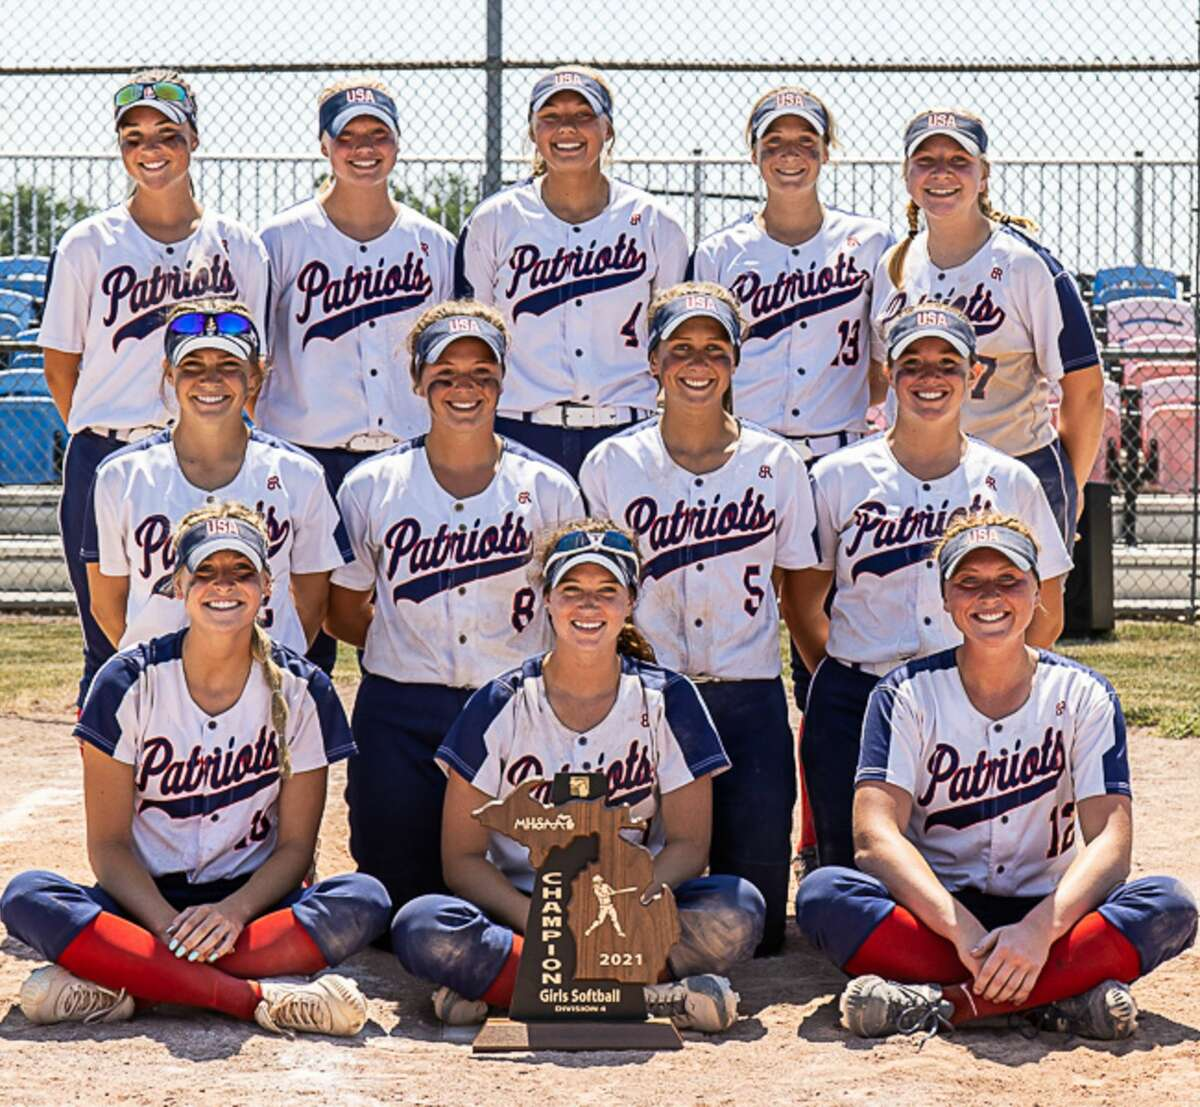 The 2021 Unionville-Sebewaing Area varsity softball team claimed the Region 32 championship on Saturday with a 13-0 win over Kingston in 5 innings. The Patriots advanced to the title game with 9-1 victory over Harbor Beach in the regional semifinals. USA advances to the state quarterfinals finals, where it will take on Allen Park Cabrini at 3 p.m. on Tuesday, June 15.